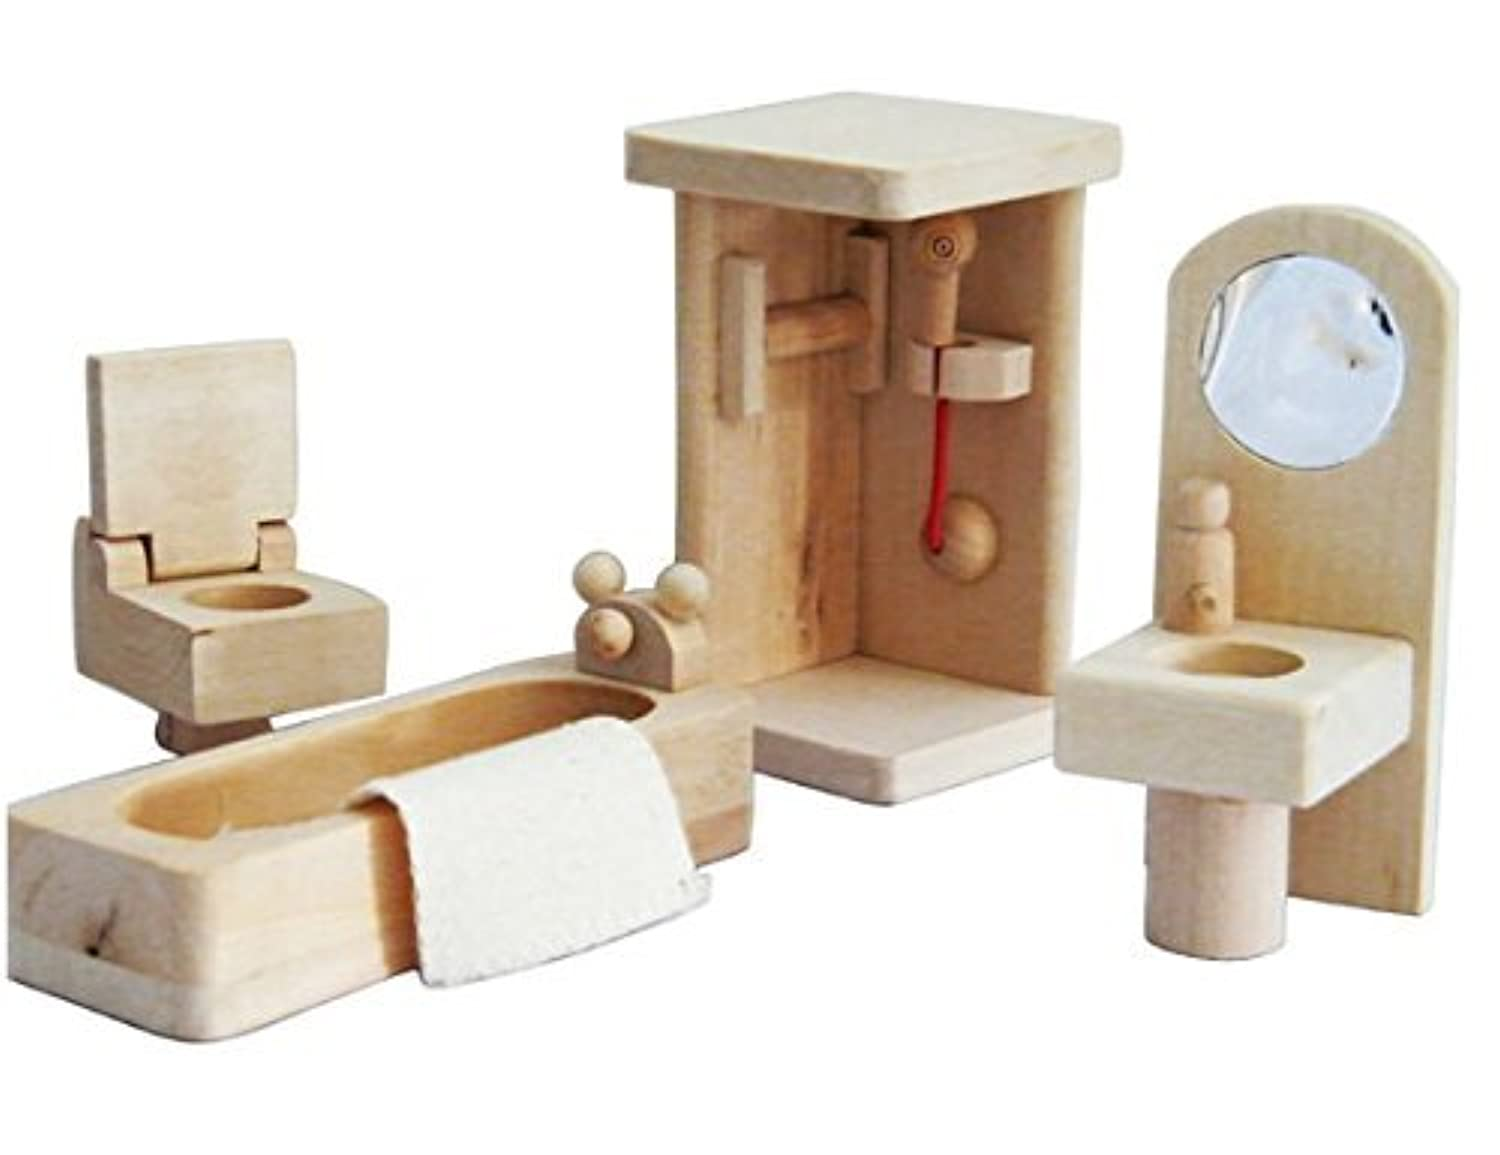 Mini Wooden Dollhouse Furniture Set Bathroom By Xyshop